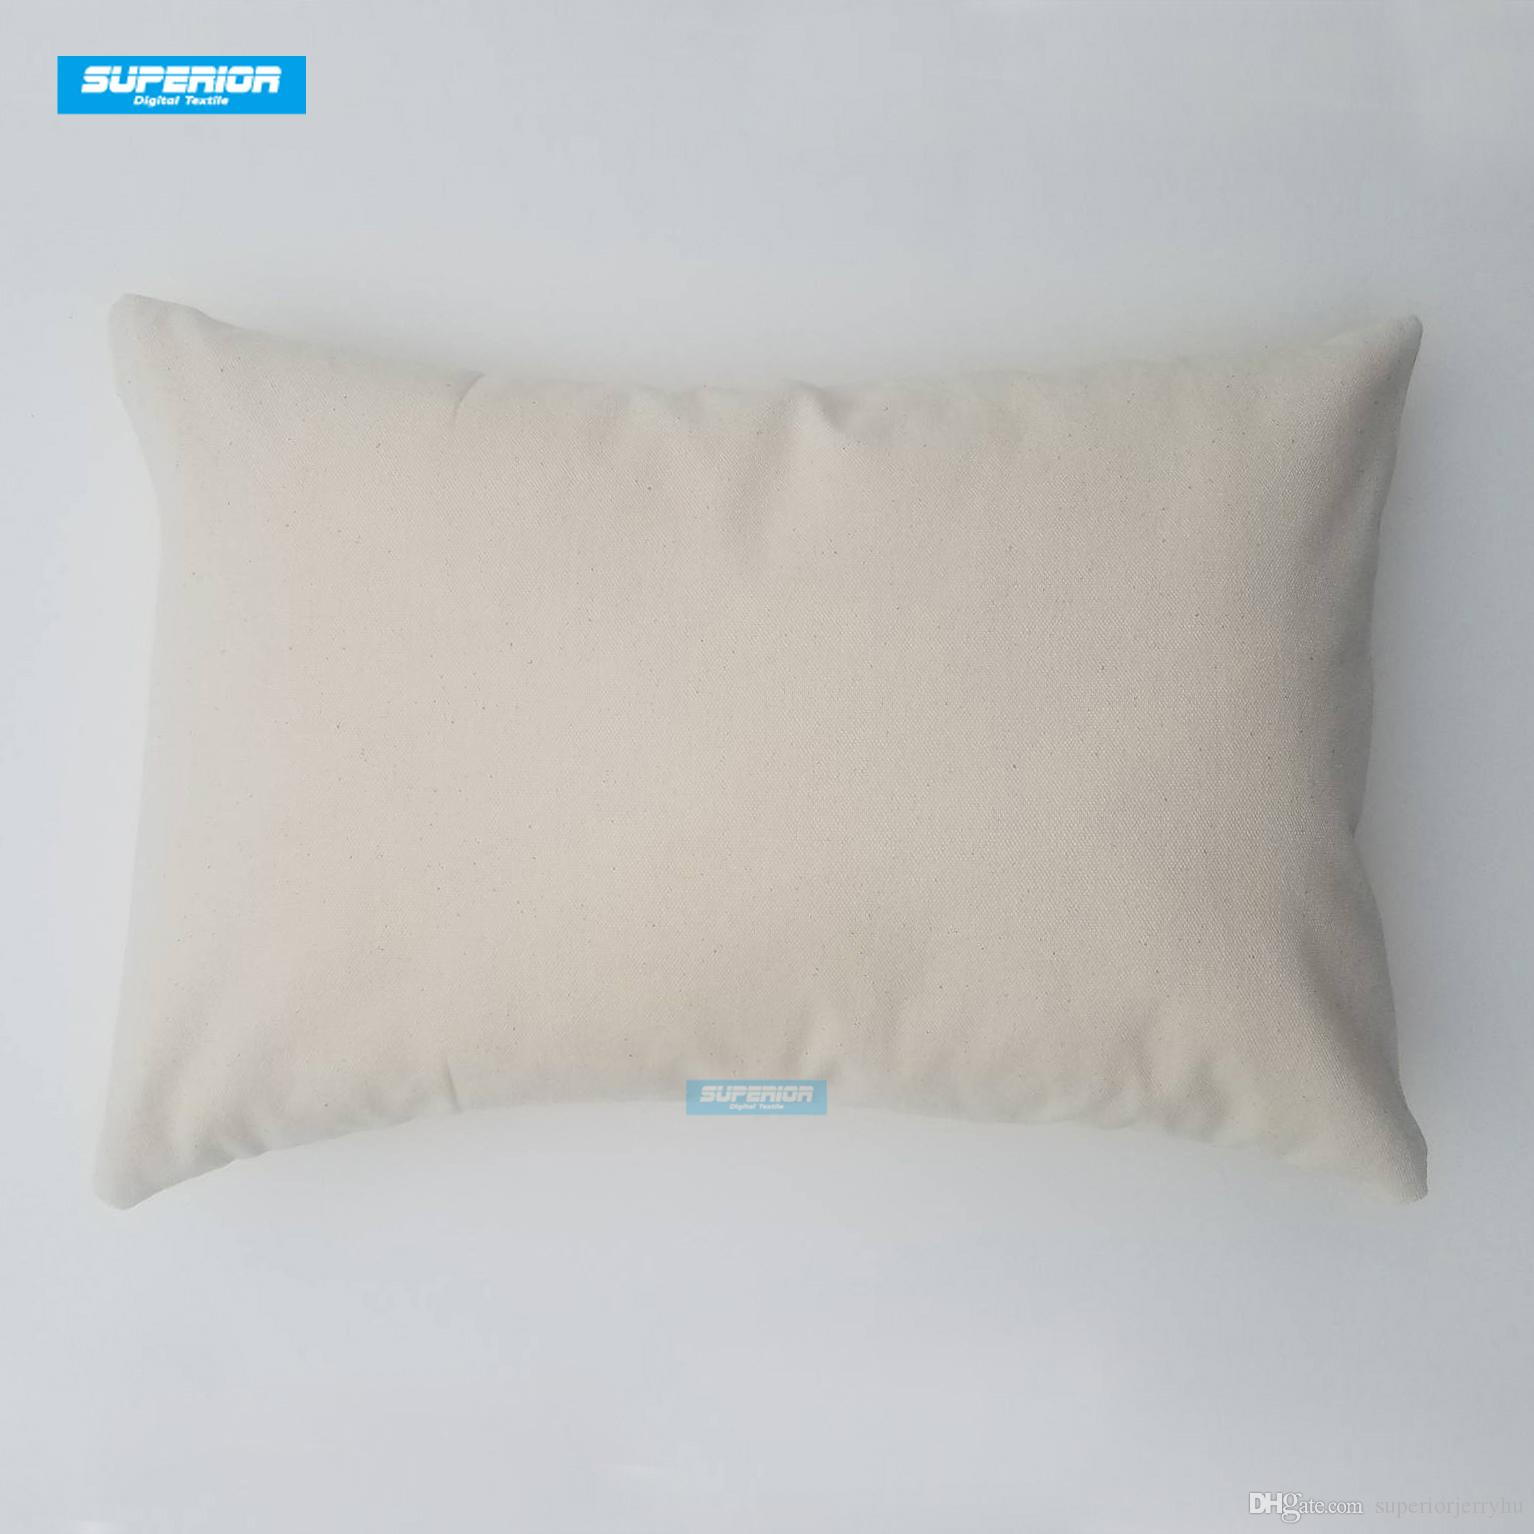 100pcs 12x18 inches Wholesale 8oz WHITE or NATURAL Cotton Canvas Pillow Cover Blanks Perfect For Stencils /Painting /Embroidery /HTV